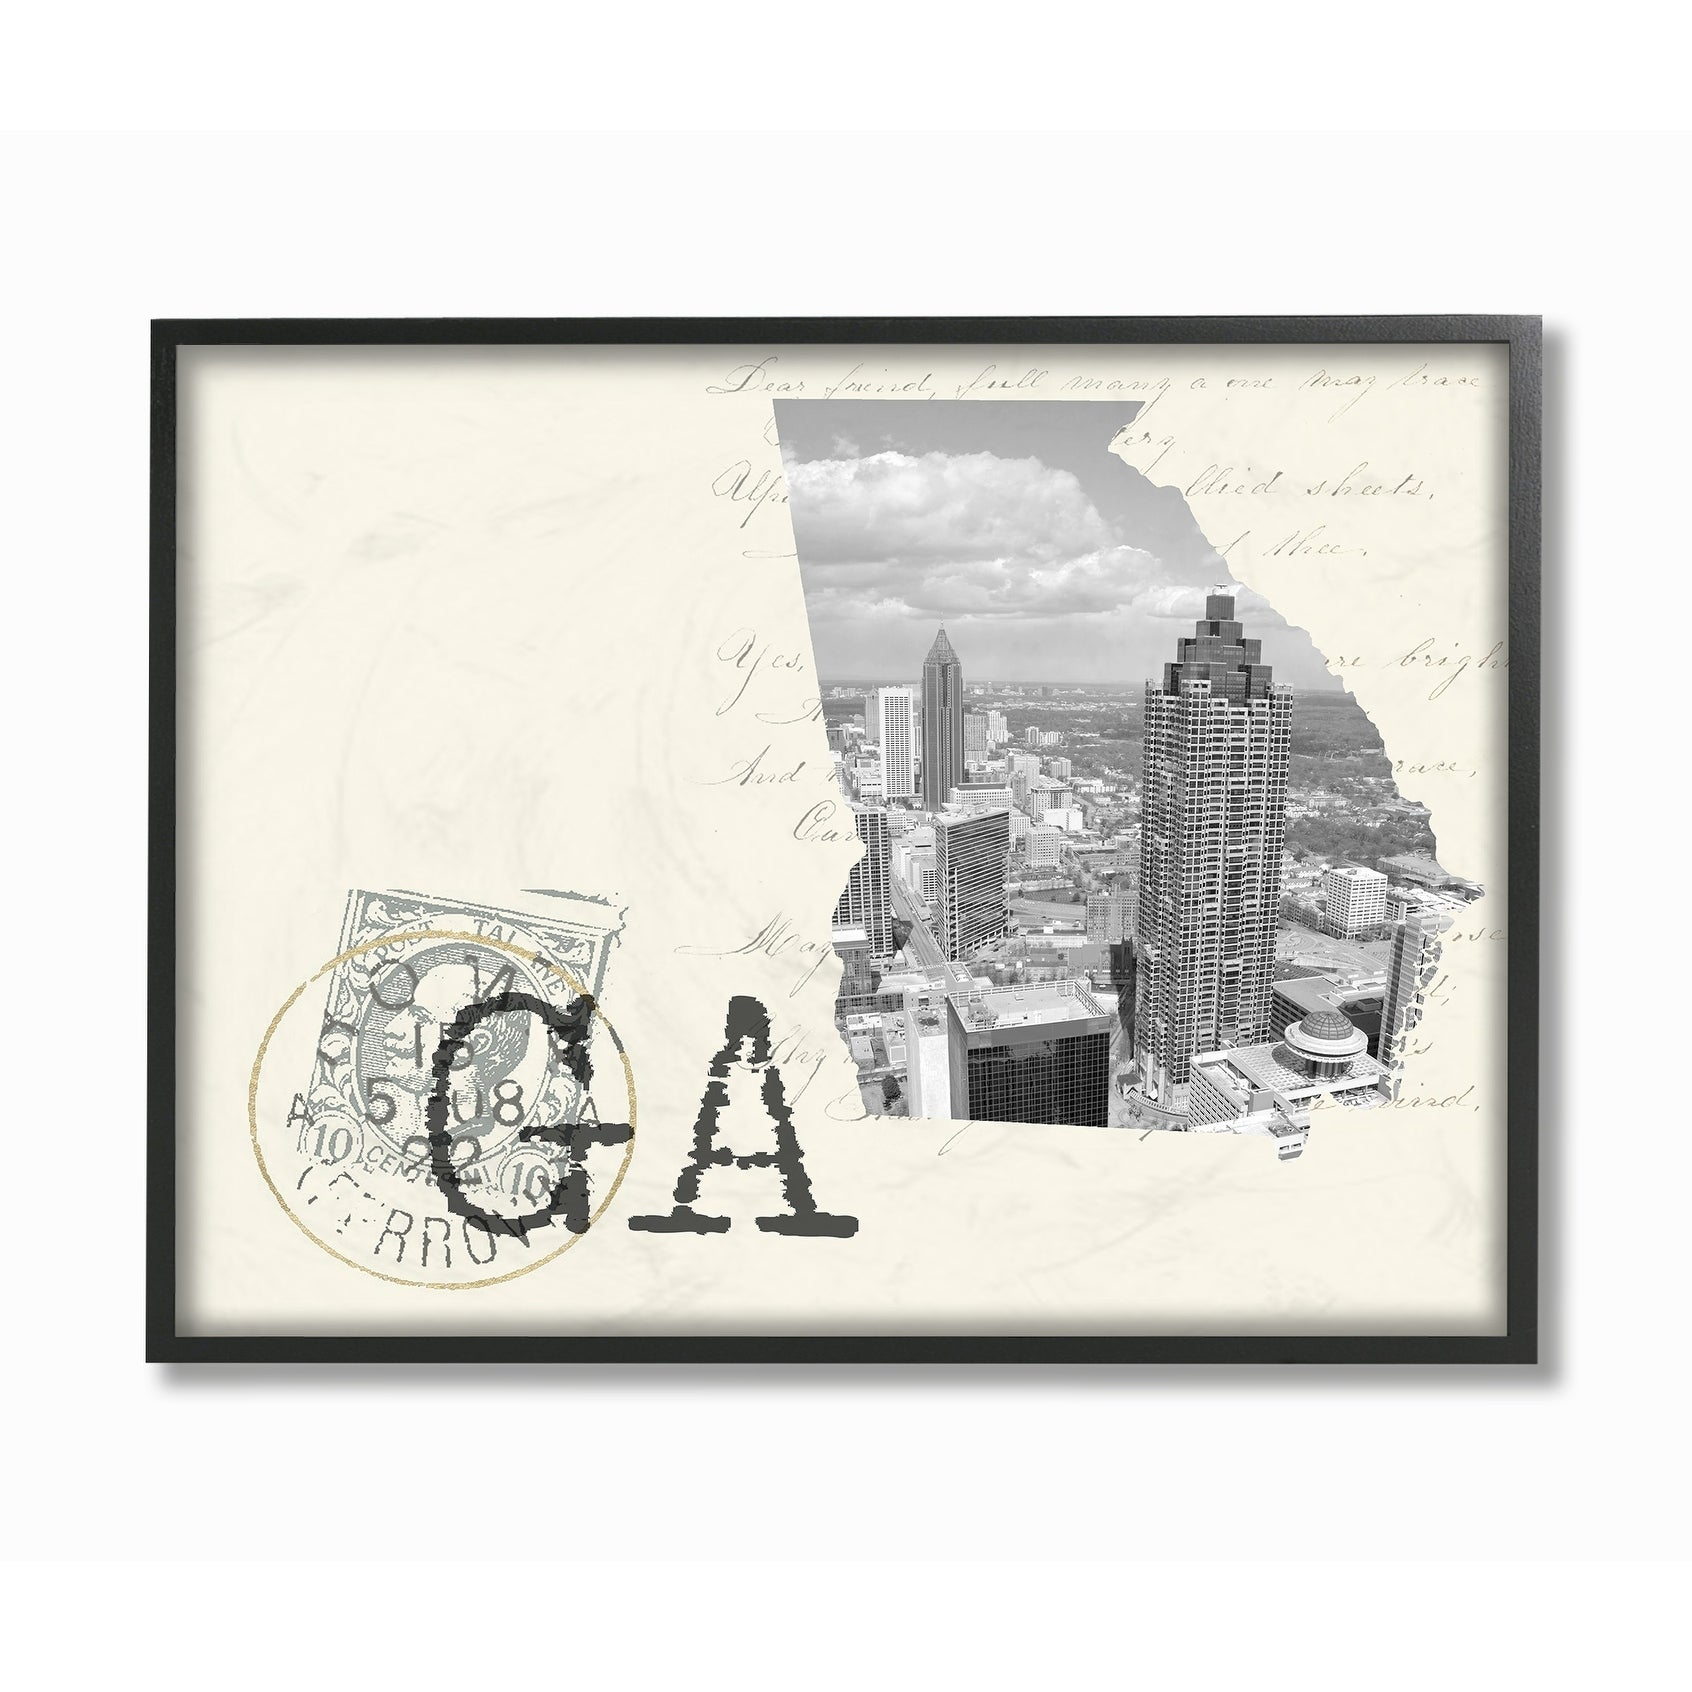 Shop the stupell home decor georgia black and white photograph framed art 11 x 14 proudly made in usa multi color on sale free shipping on orders